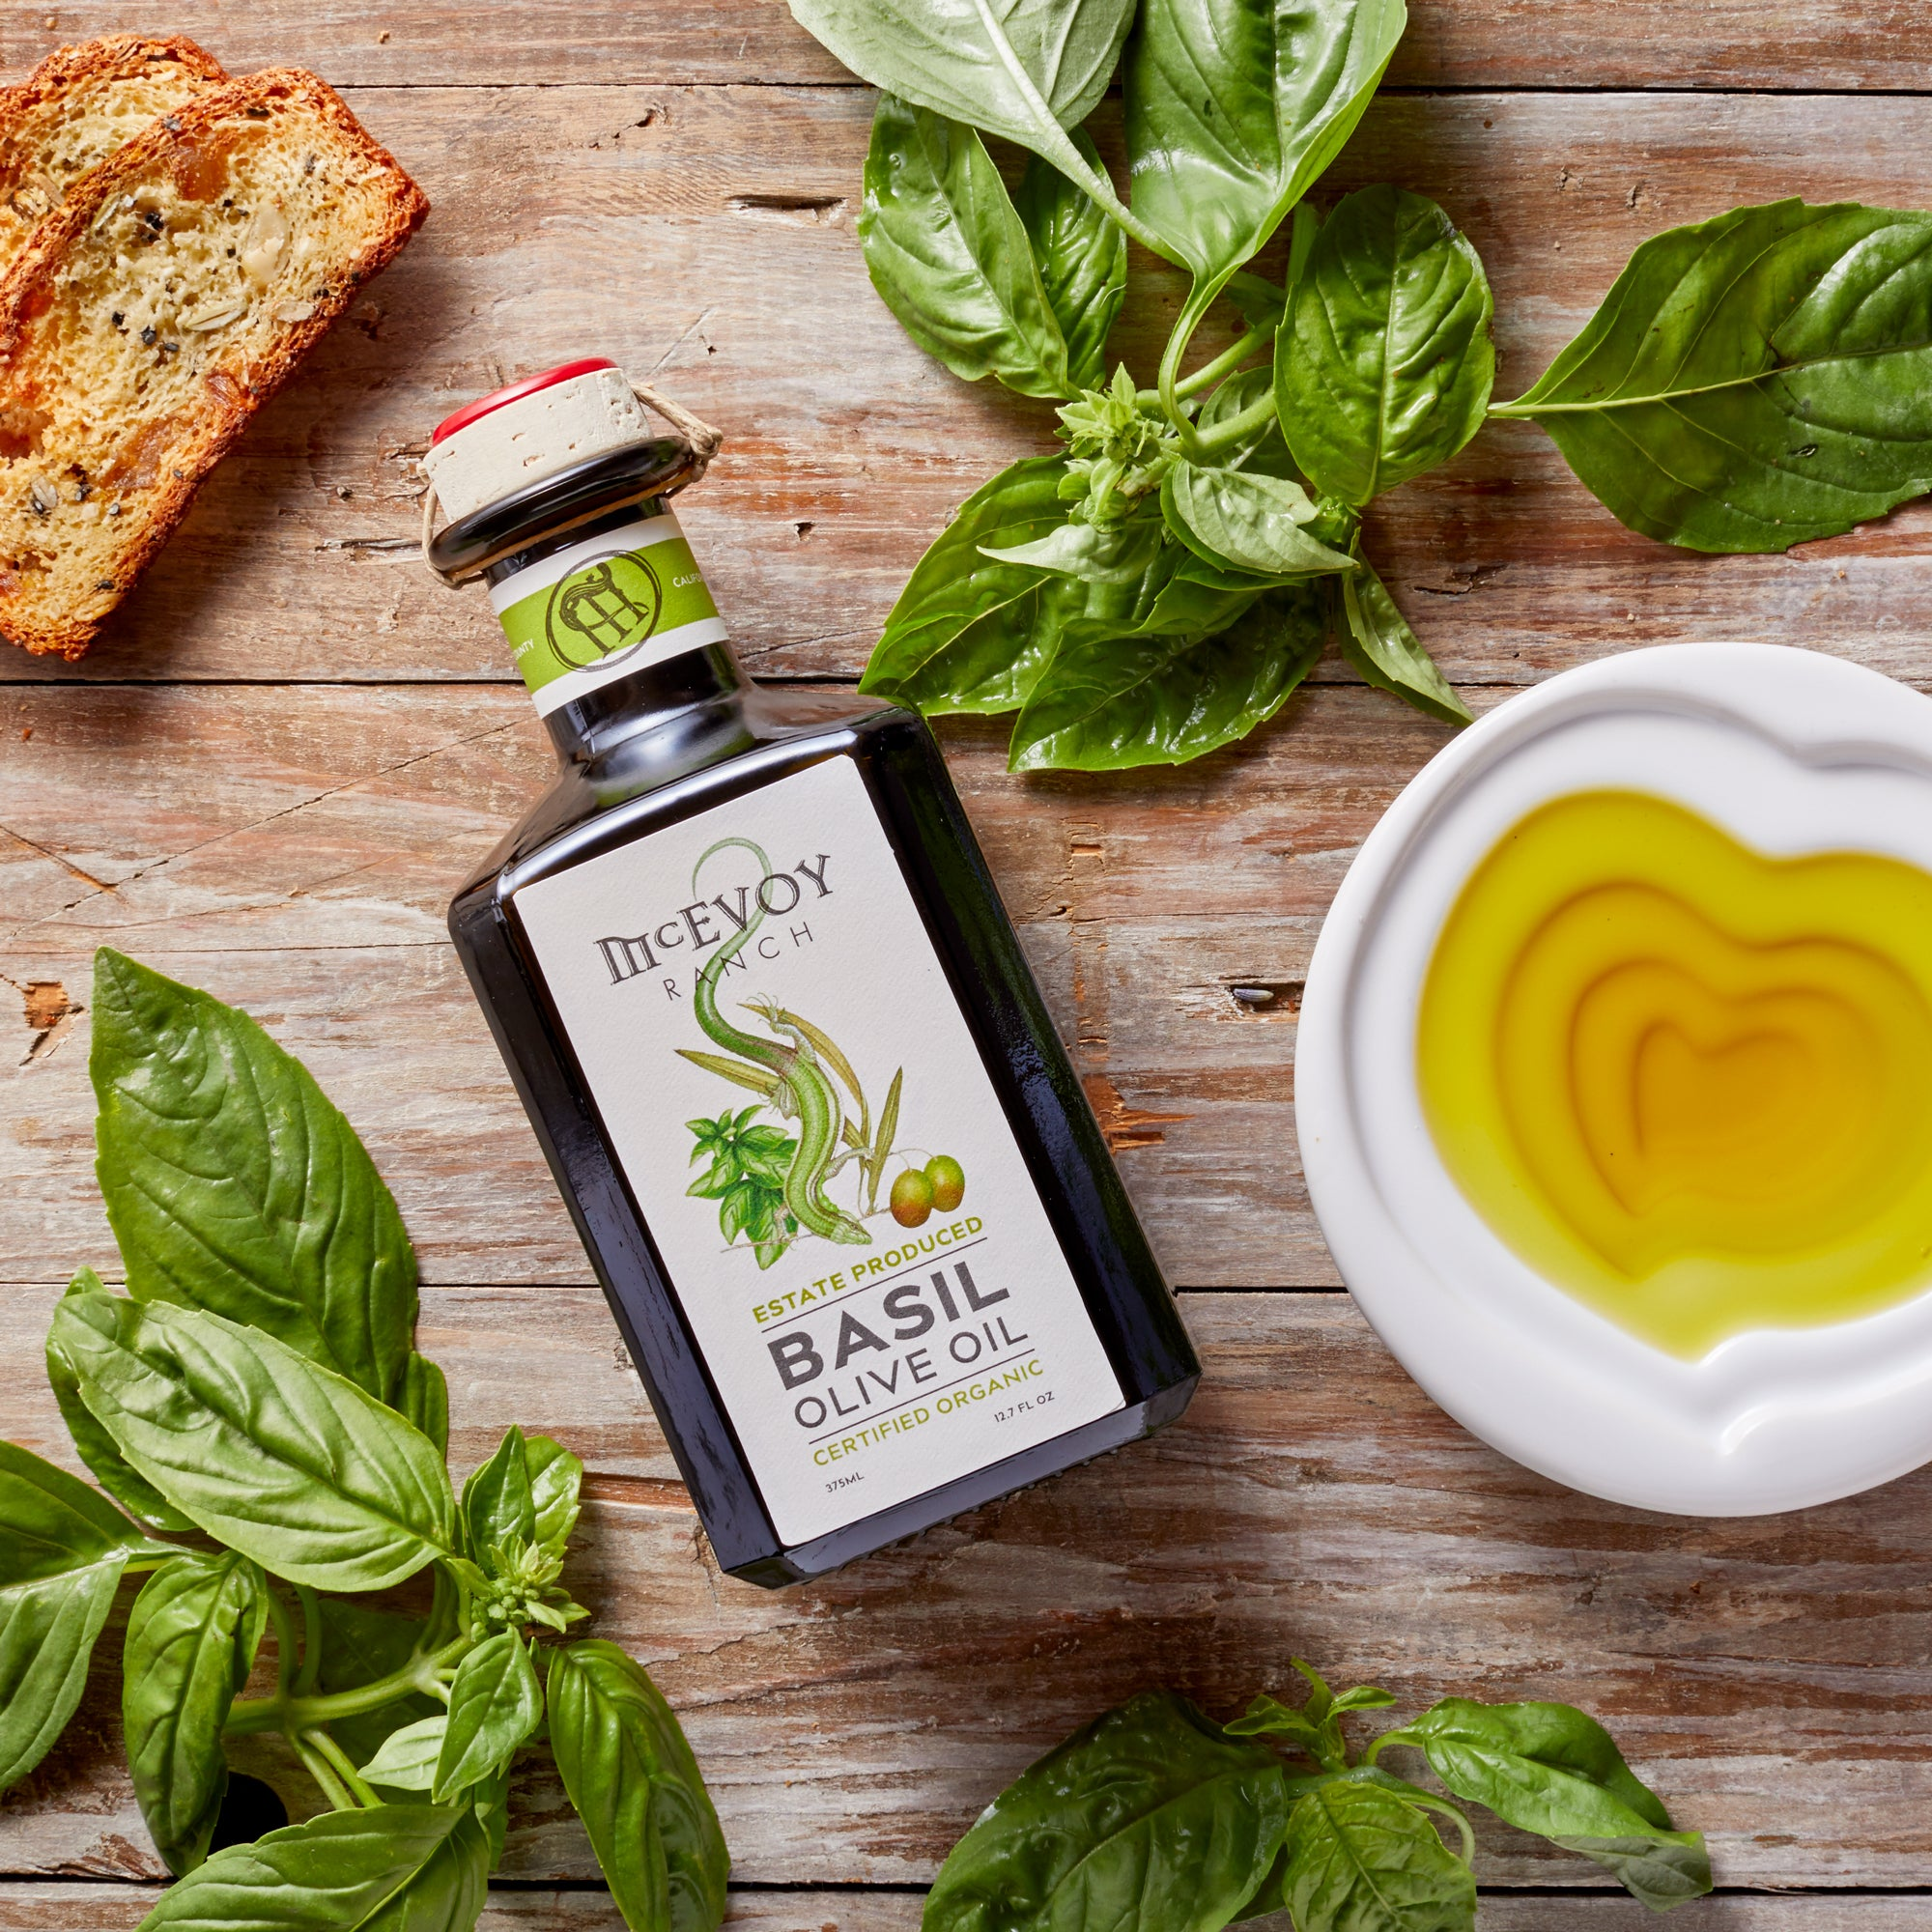 What to Make With Your New Basil Olive Oil